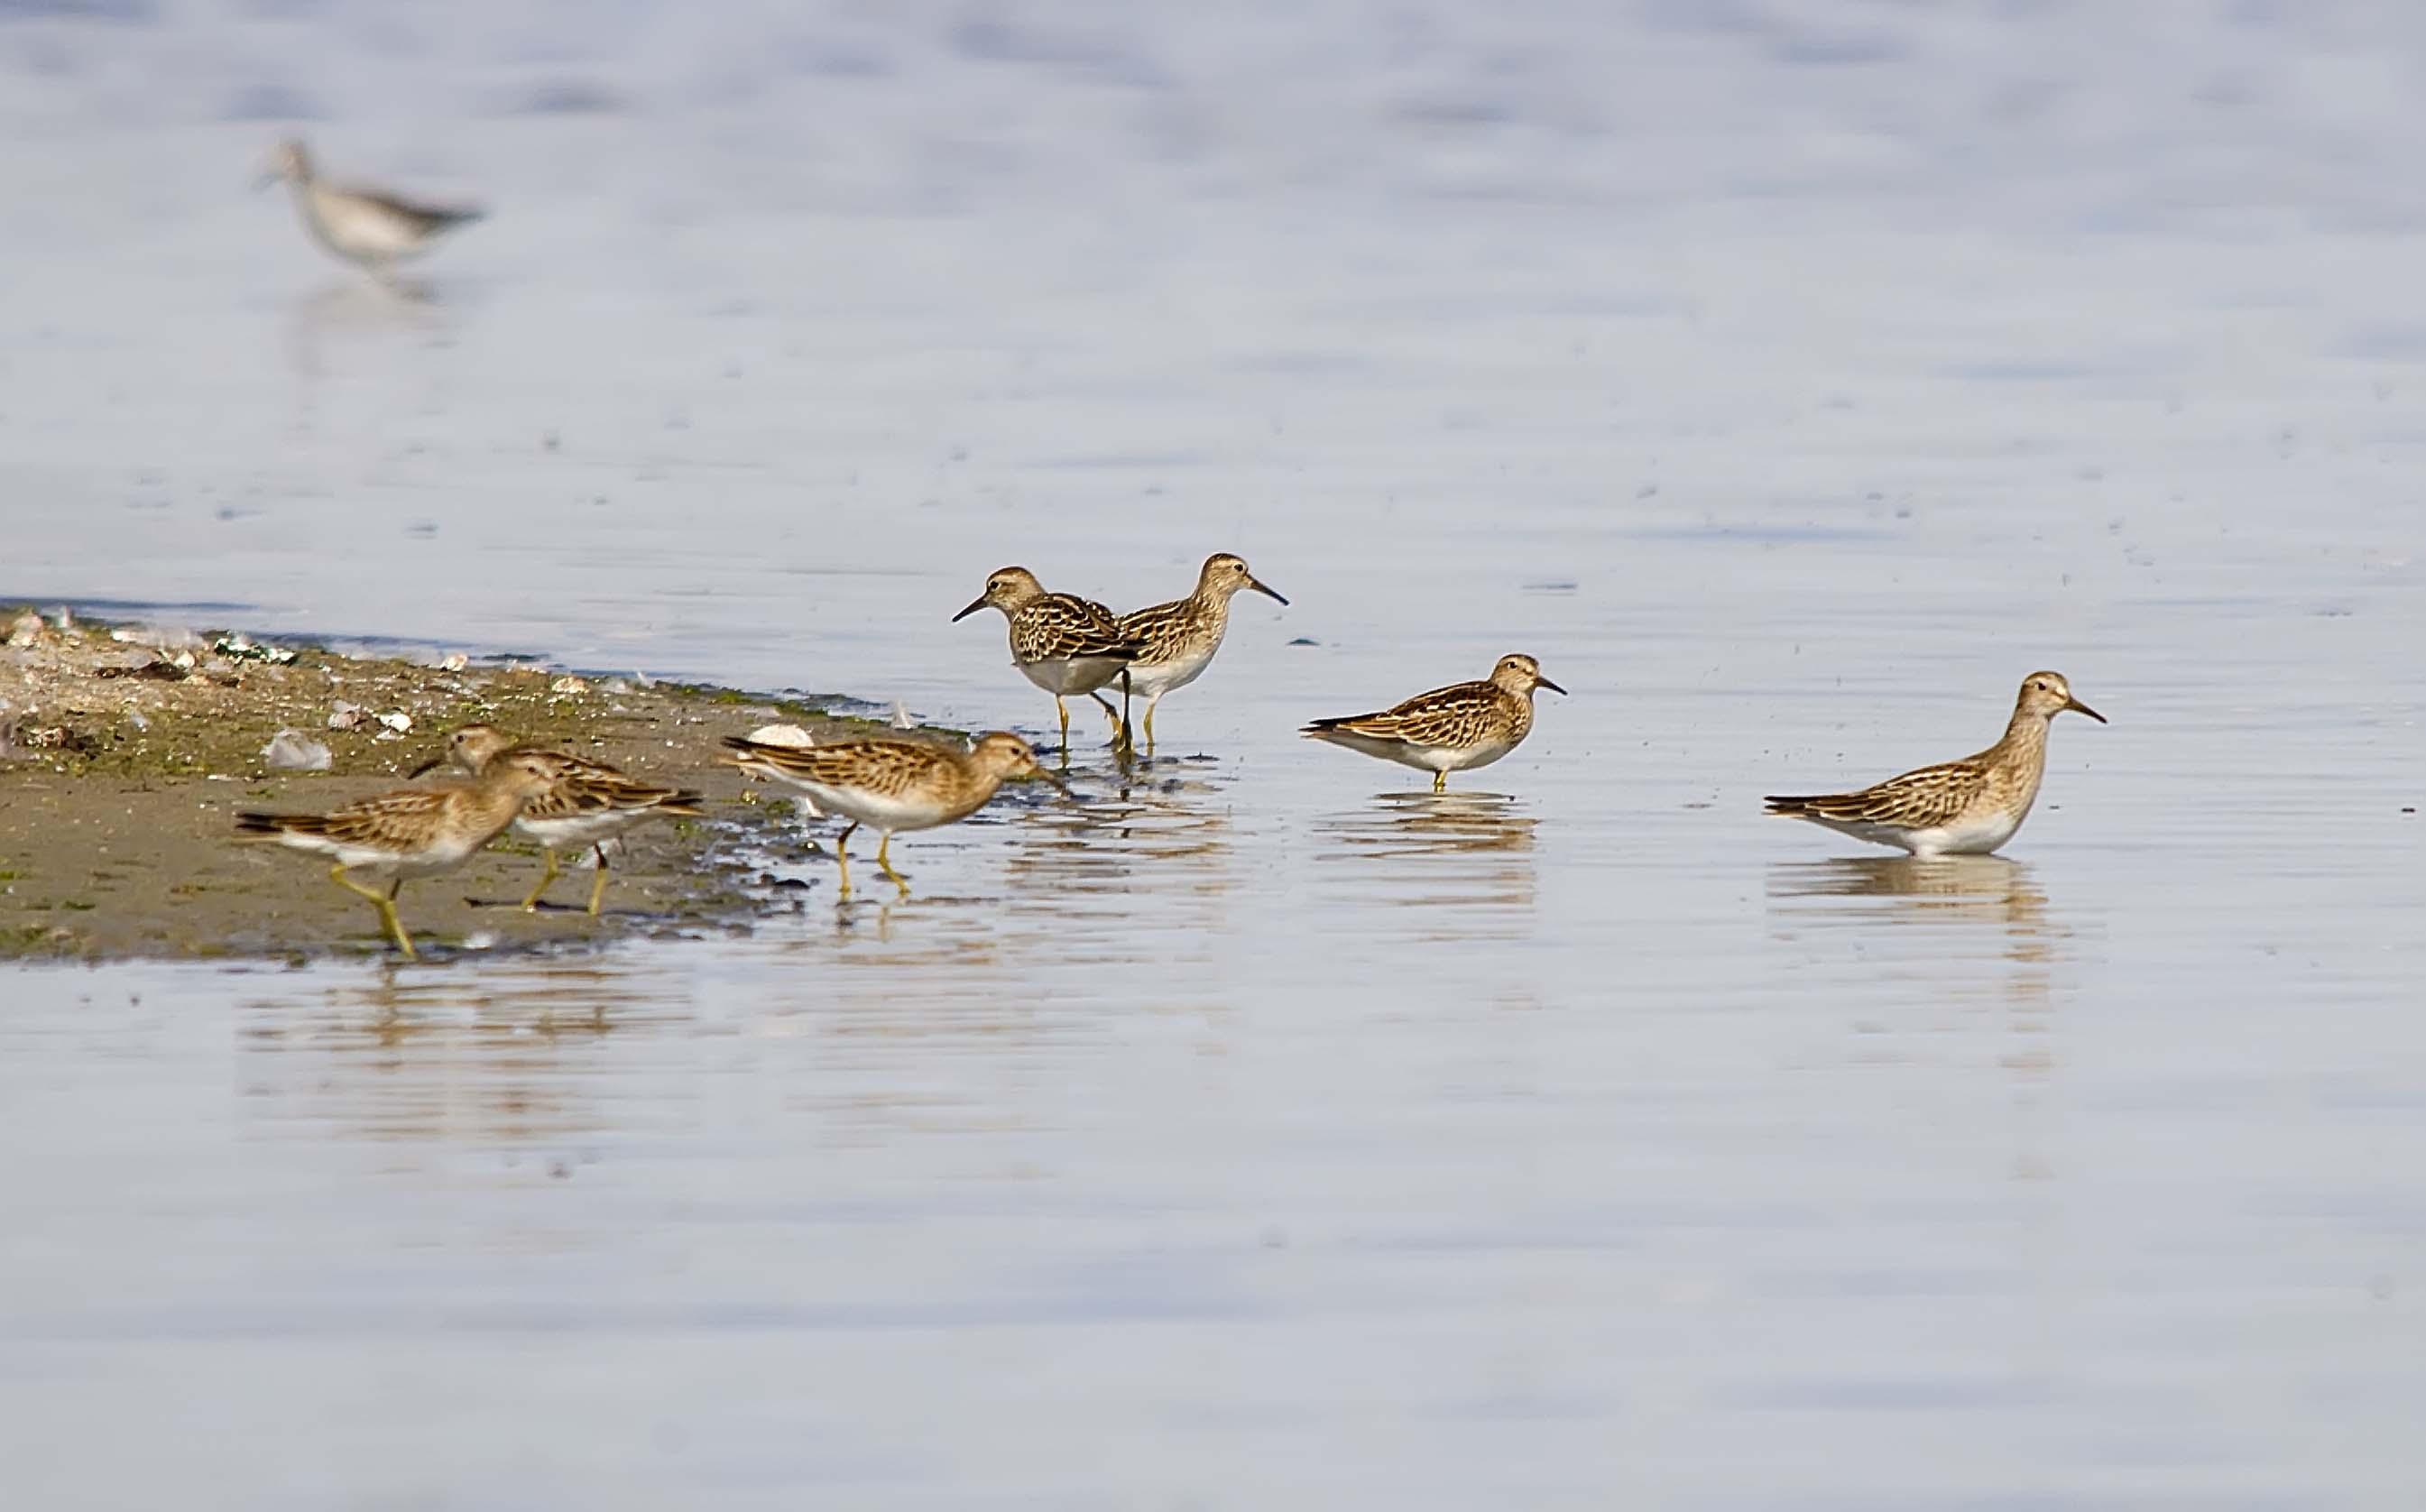 Pectoral and Least Sandpipers - Weed Lake, Alberta, September 2012